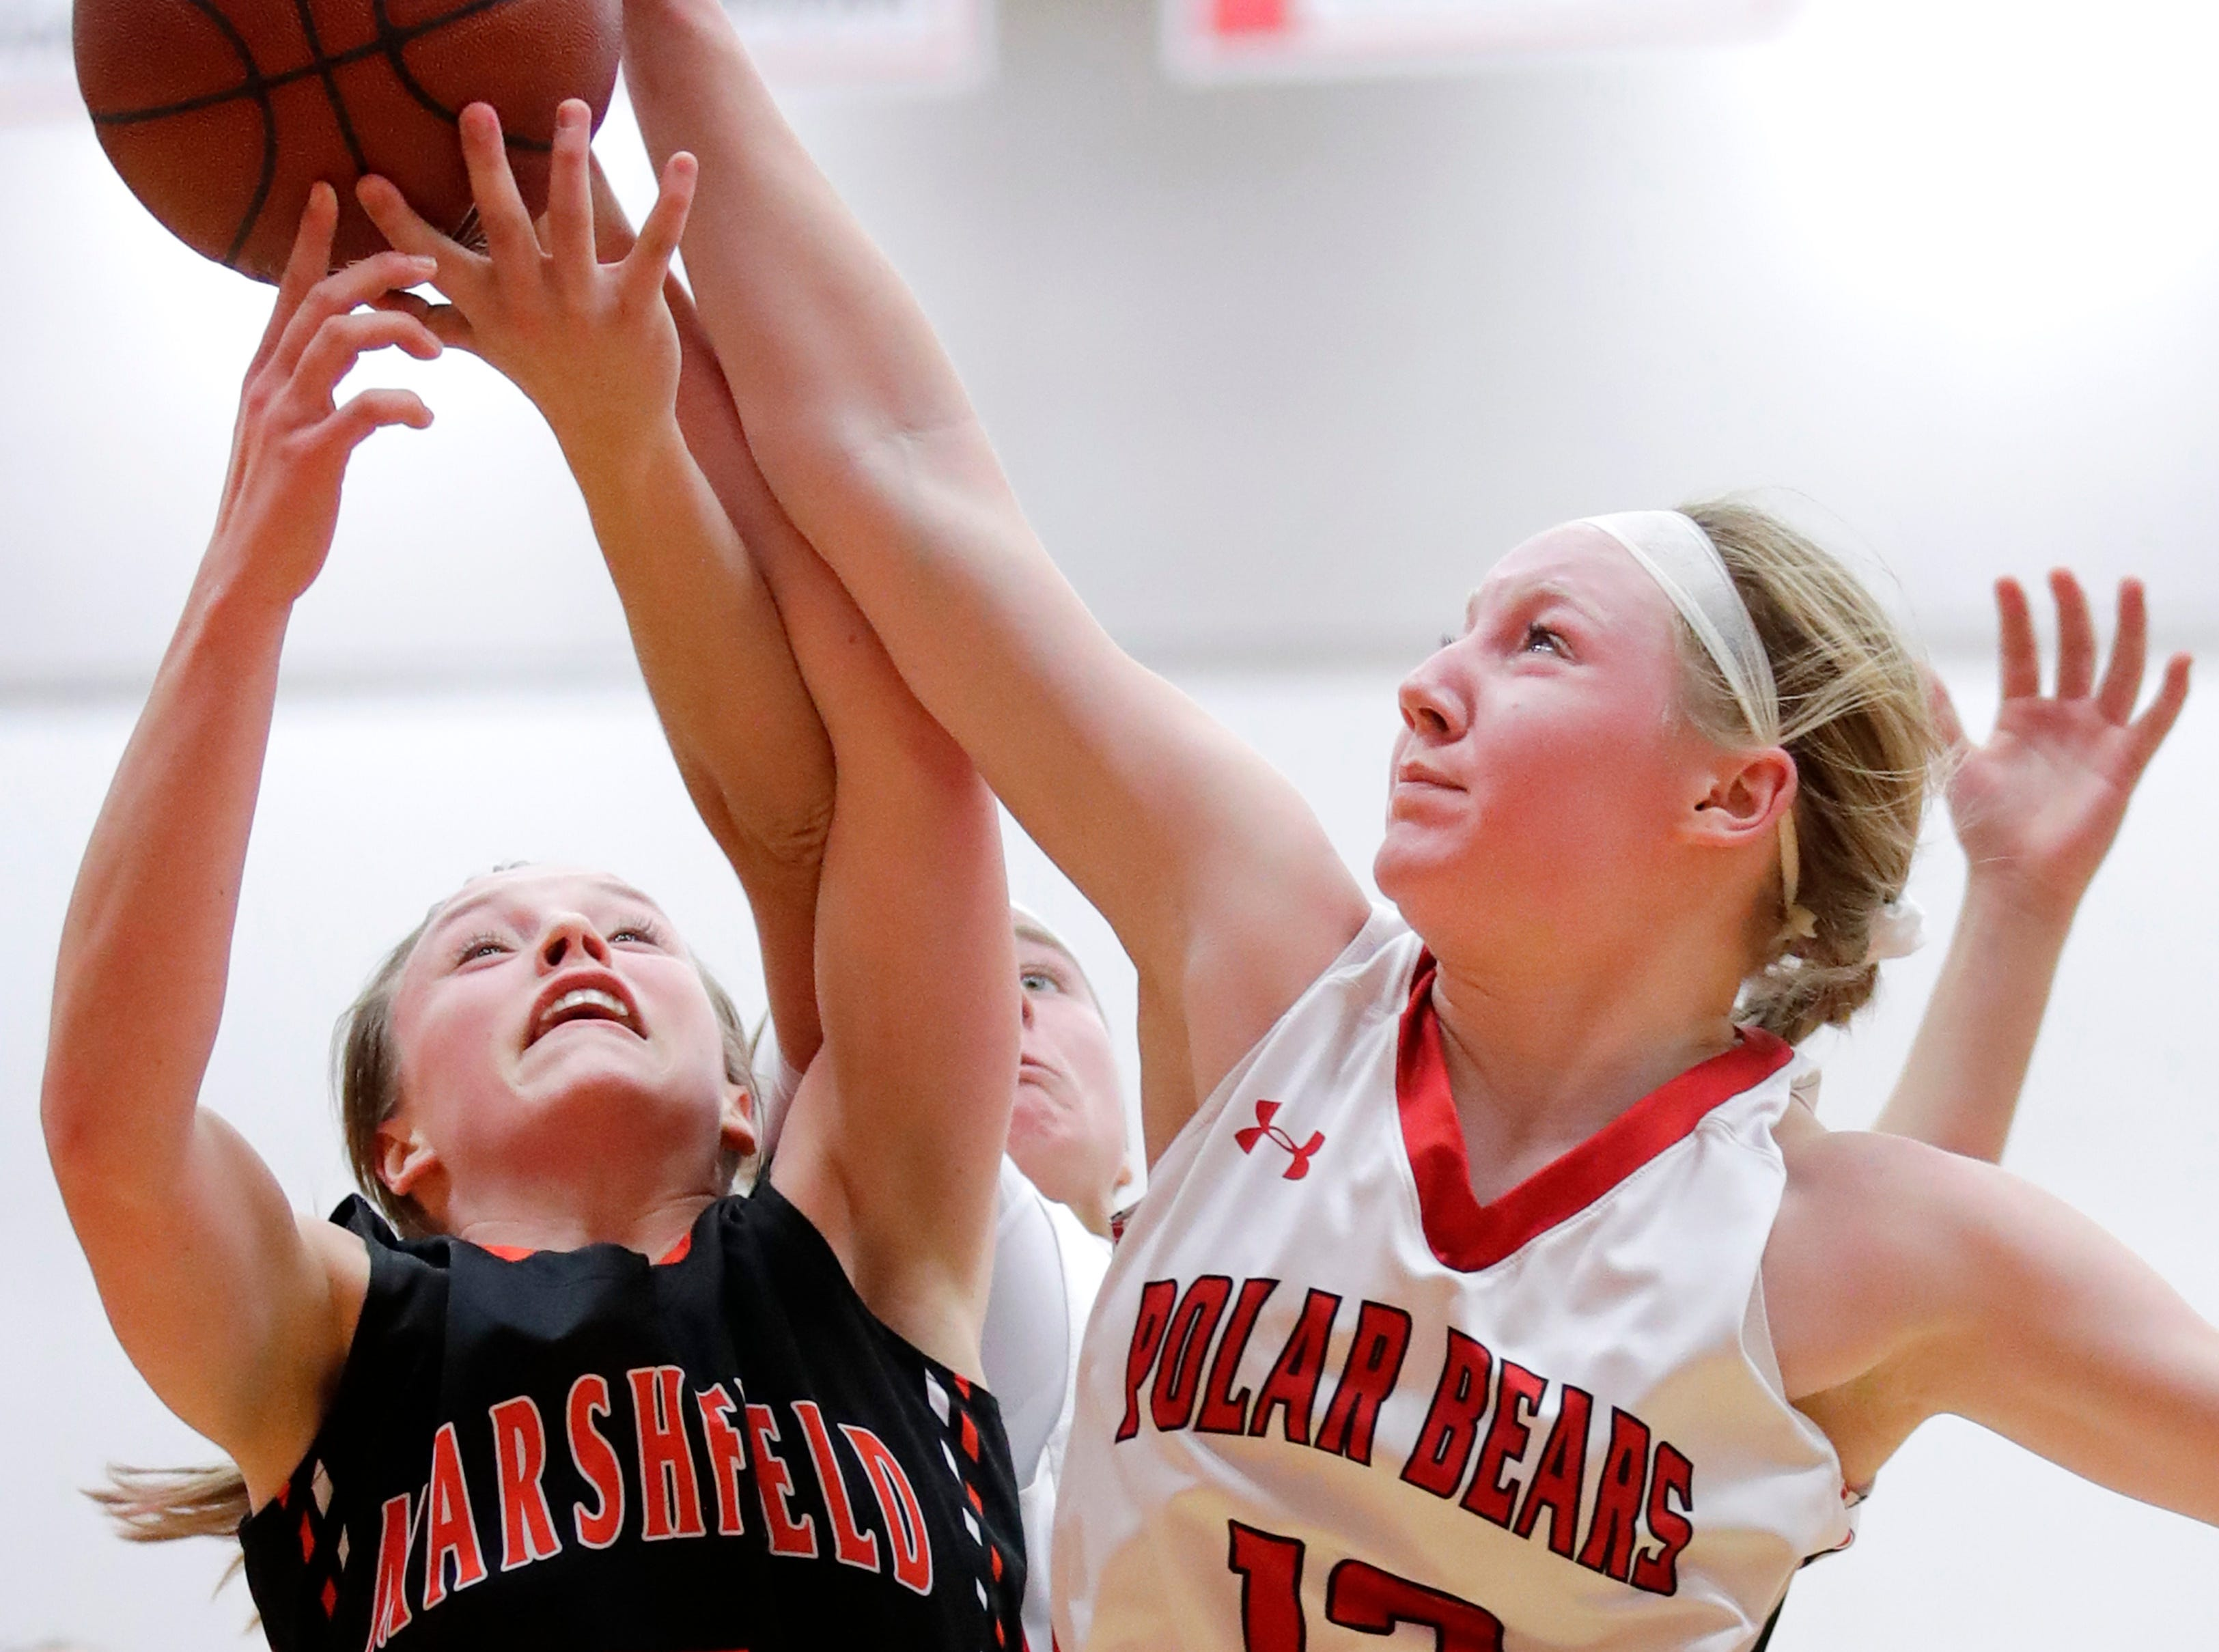 Marshfield High School's Kaydee Johnson can't get a shot past Hortonville High School's Morgan Draheim Thursday, Nov. 15, 2018, in Hortonville, Wis.